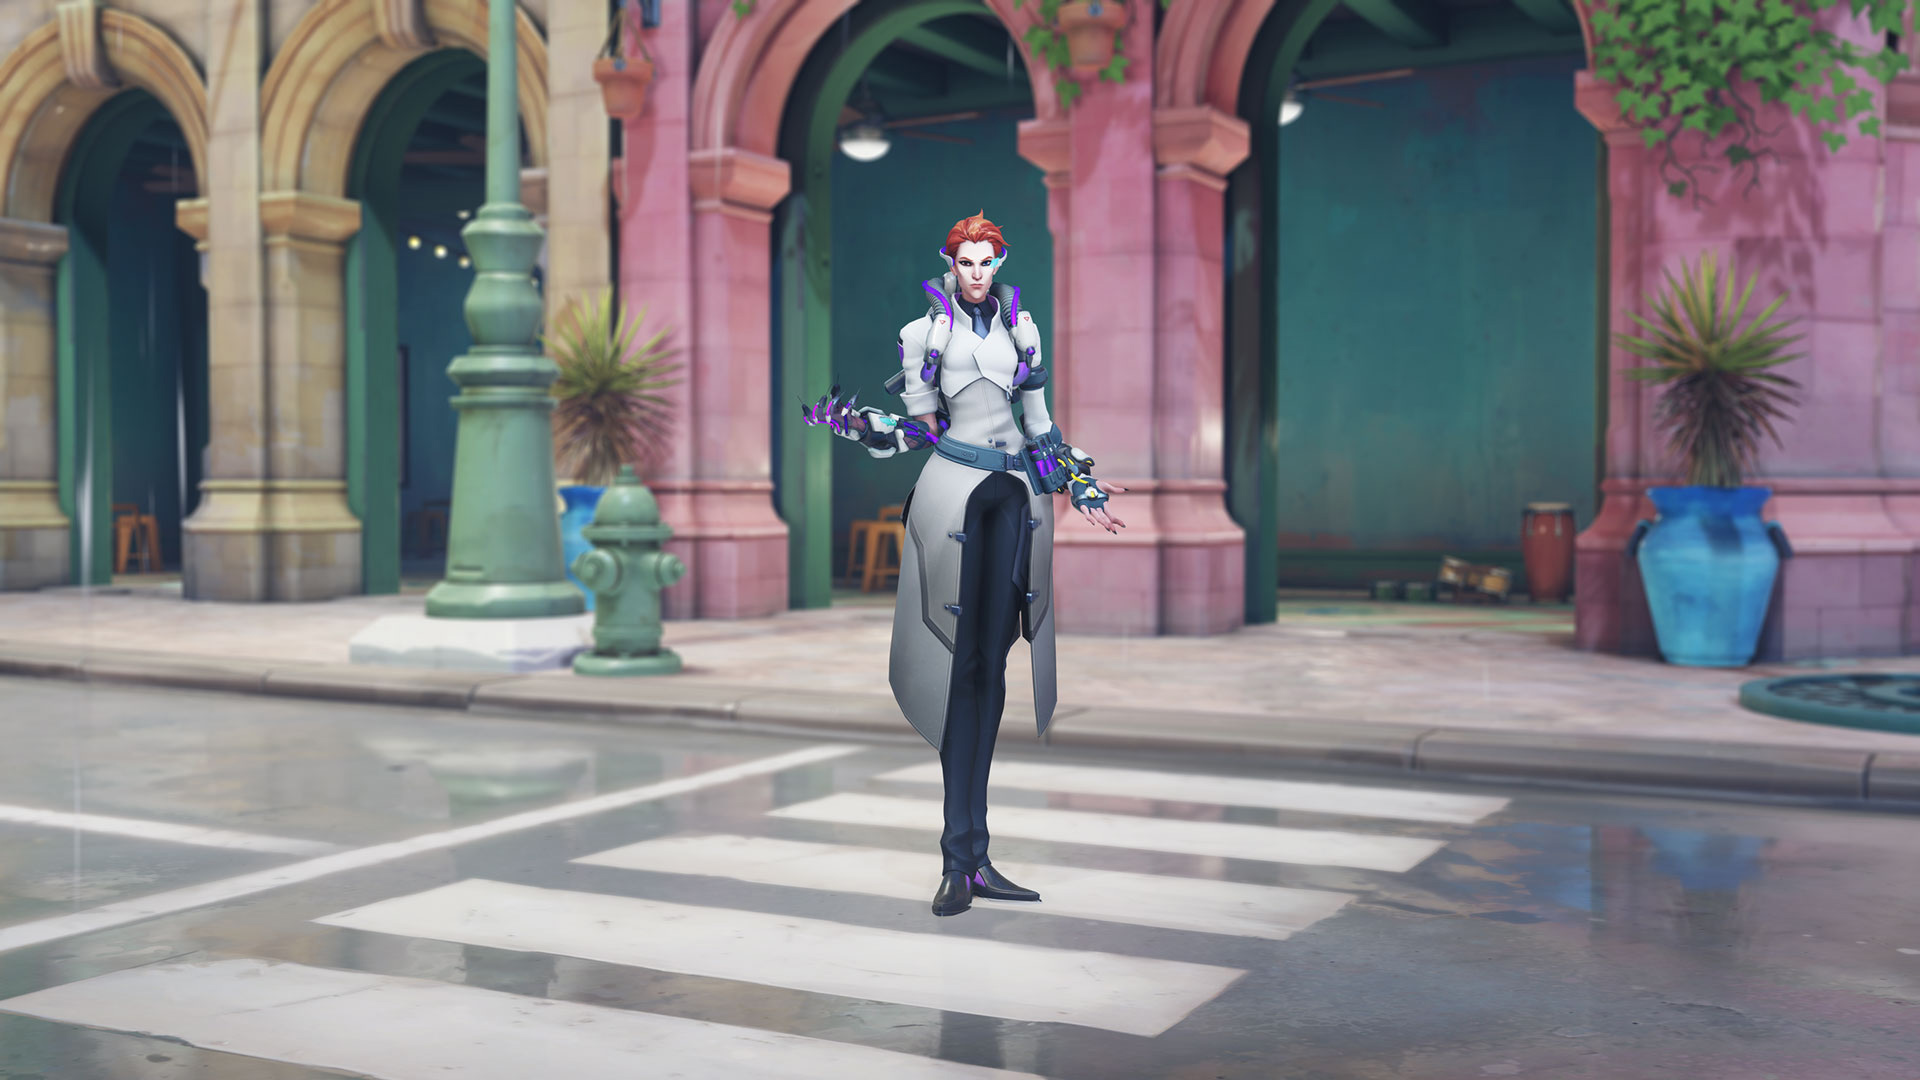 Scientist Moira skin